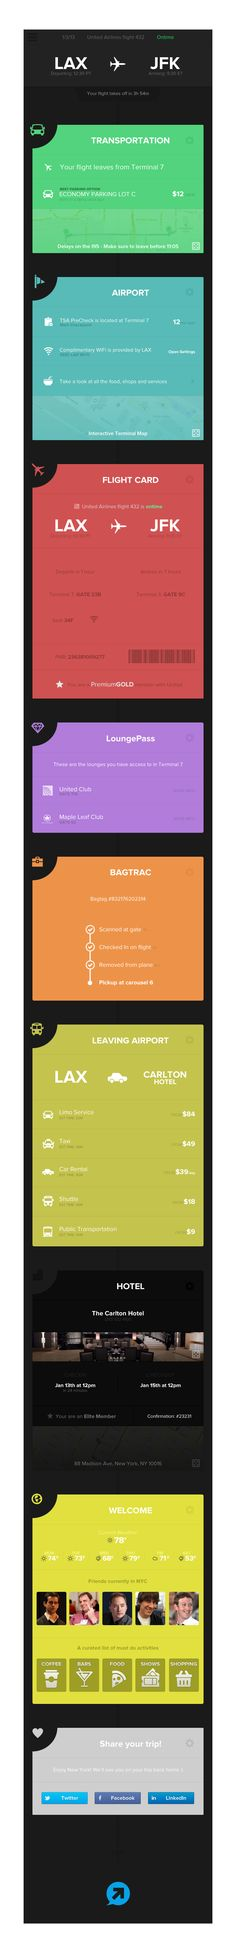 interface web pour un site aeroport Web Design, Flat Design, App Ui Design, Dashboard Design, Graphic Design, Interface Web, User Interface Design, Application Mobile, Application Design